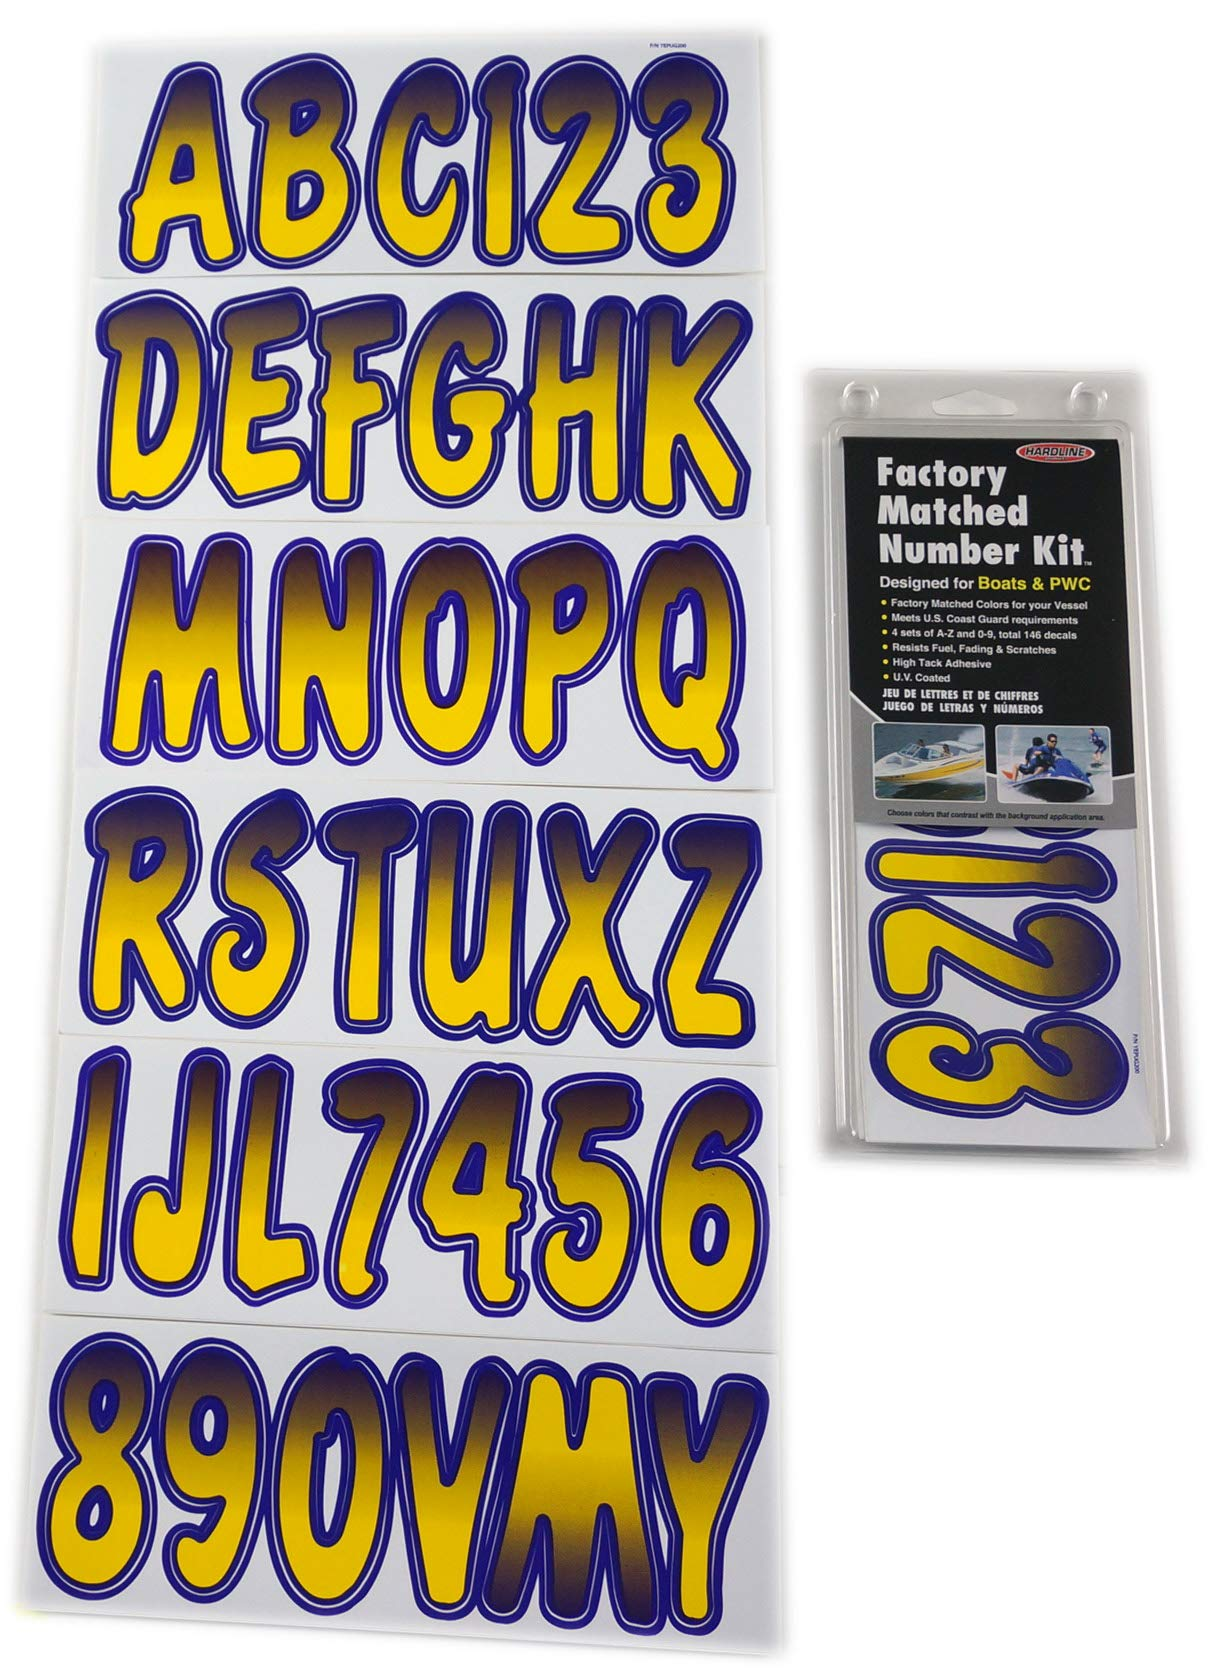 Hardline Products Series 200 Factory Matched 3-Inch Boat & PWC Registration Number Kit, Yellow/Purple